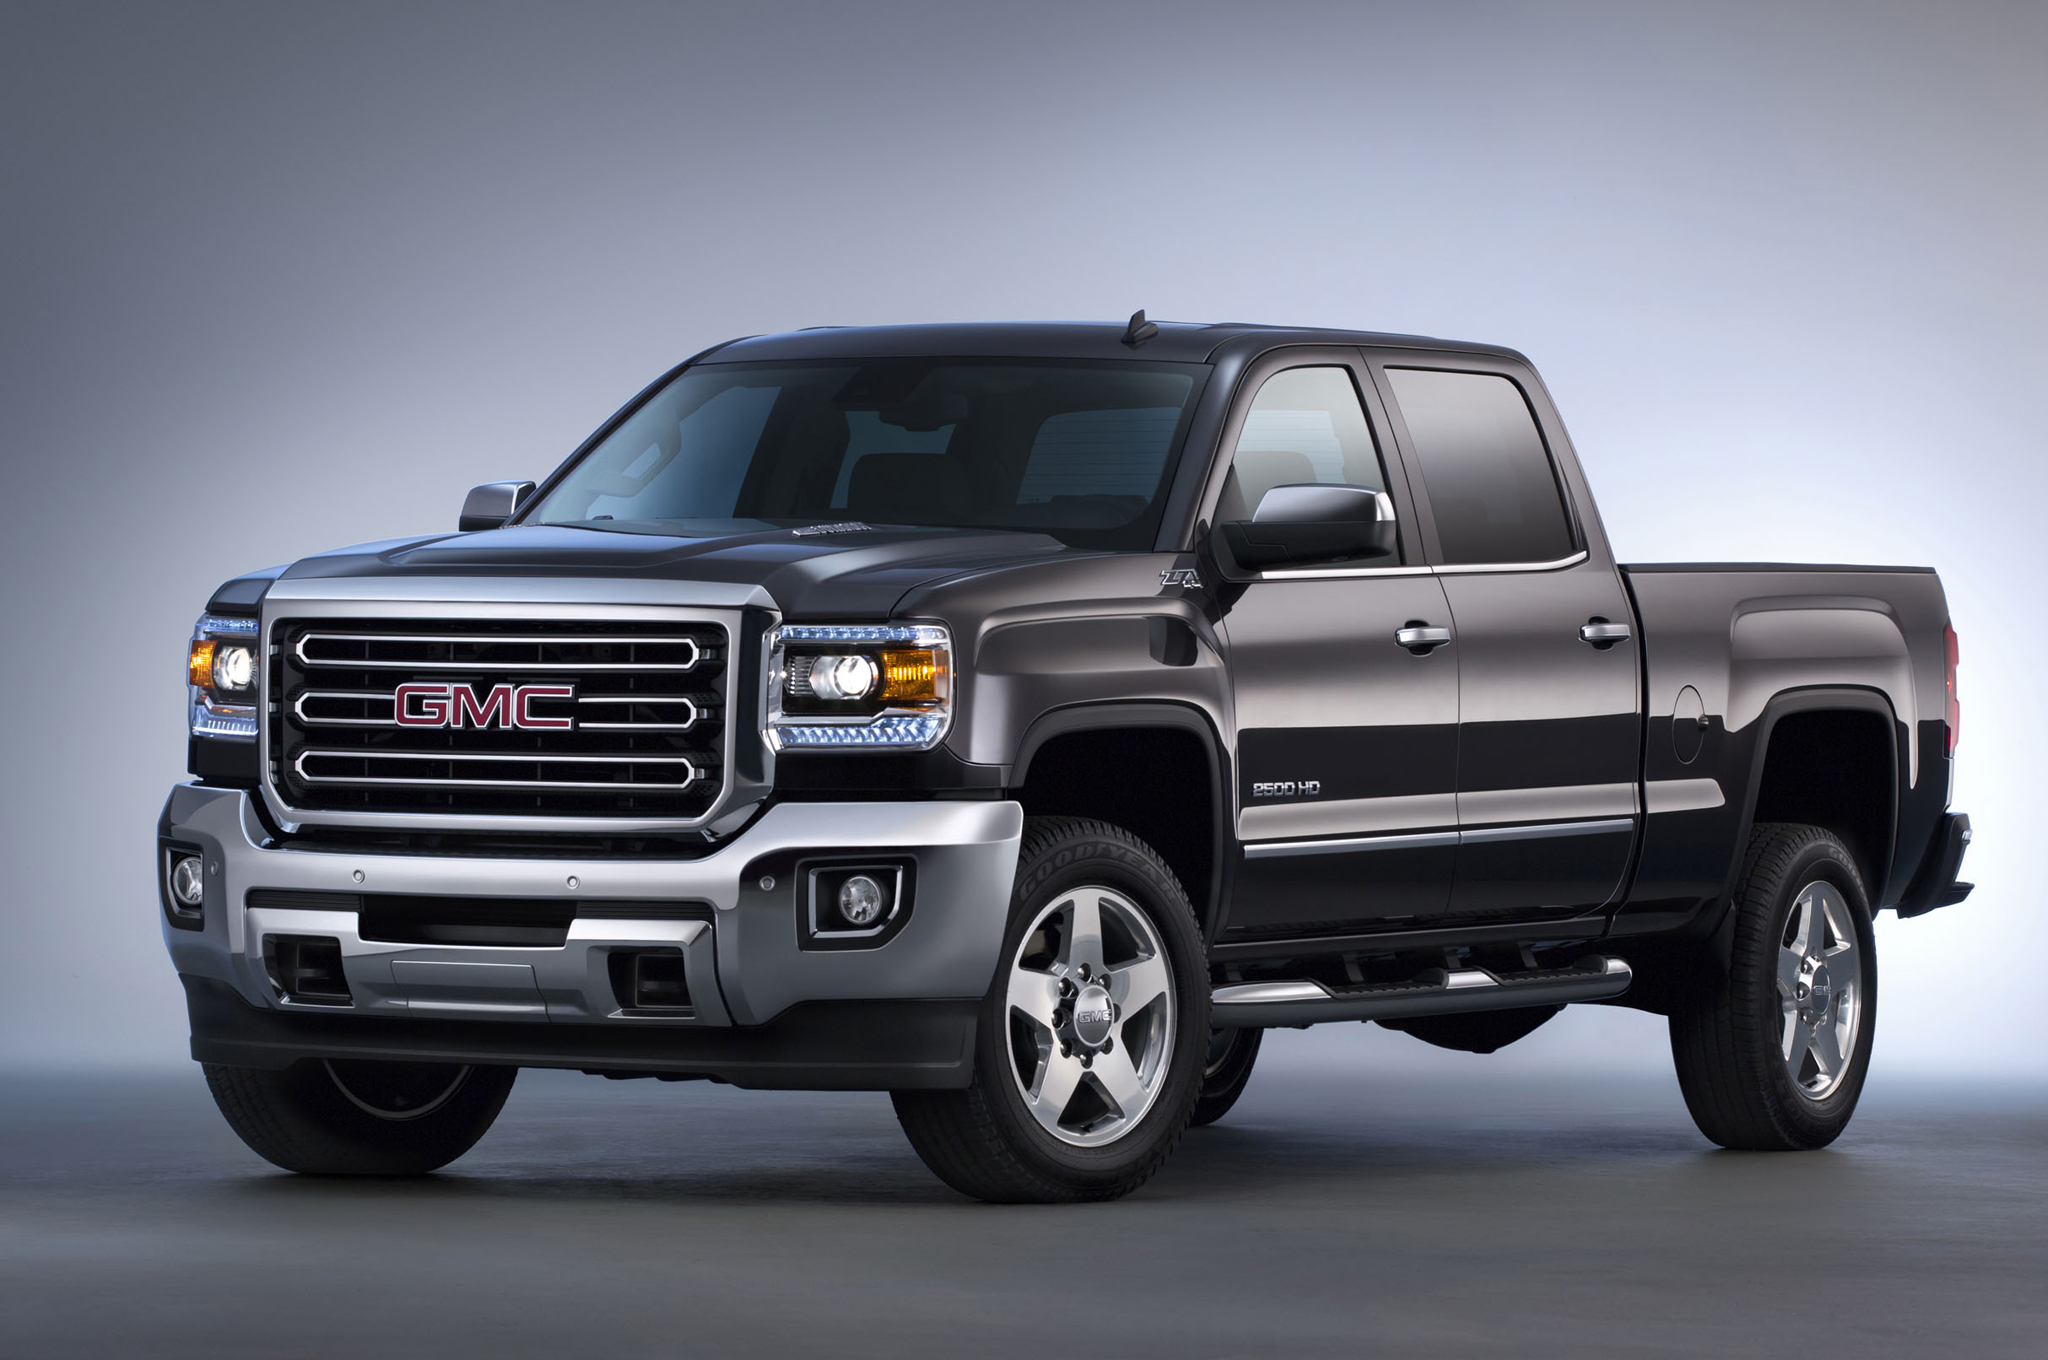 GMC Sierra 2500hd #21